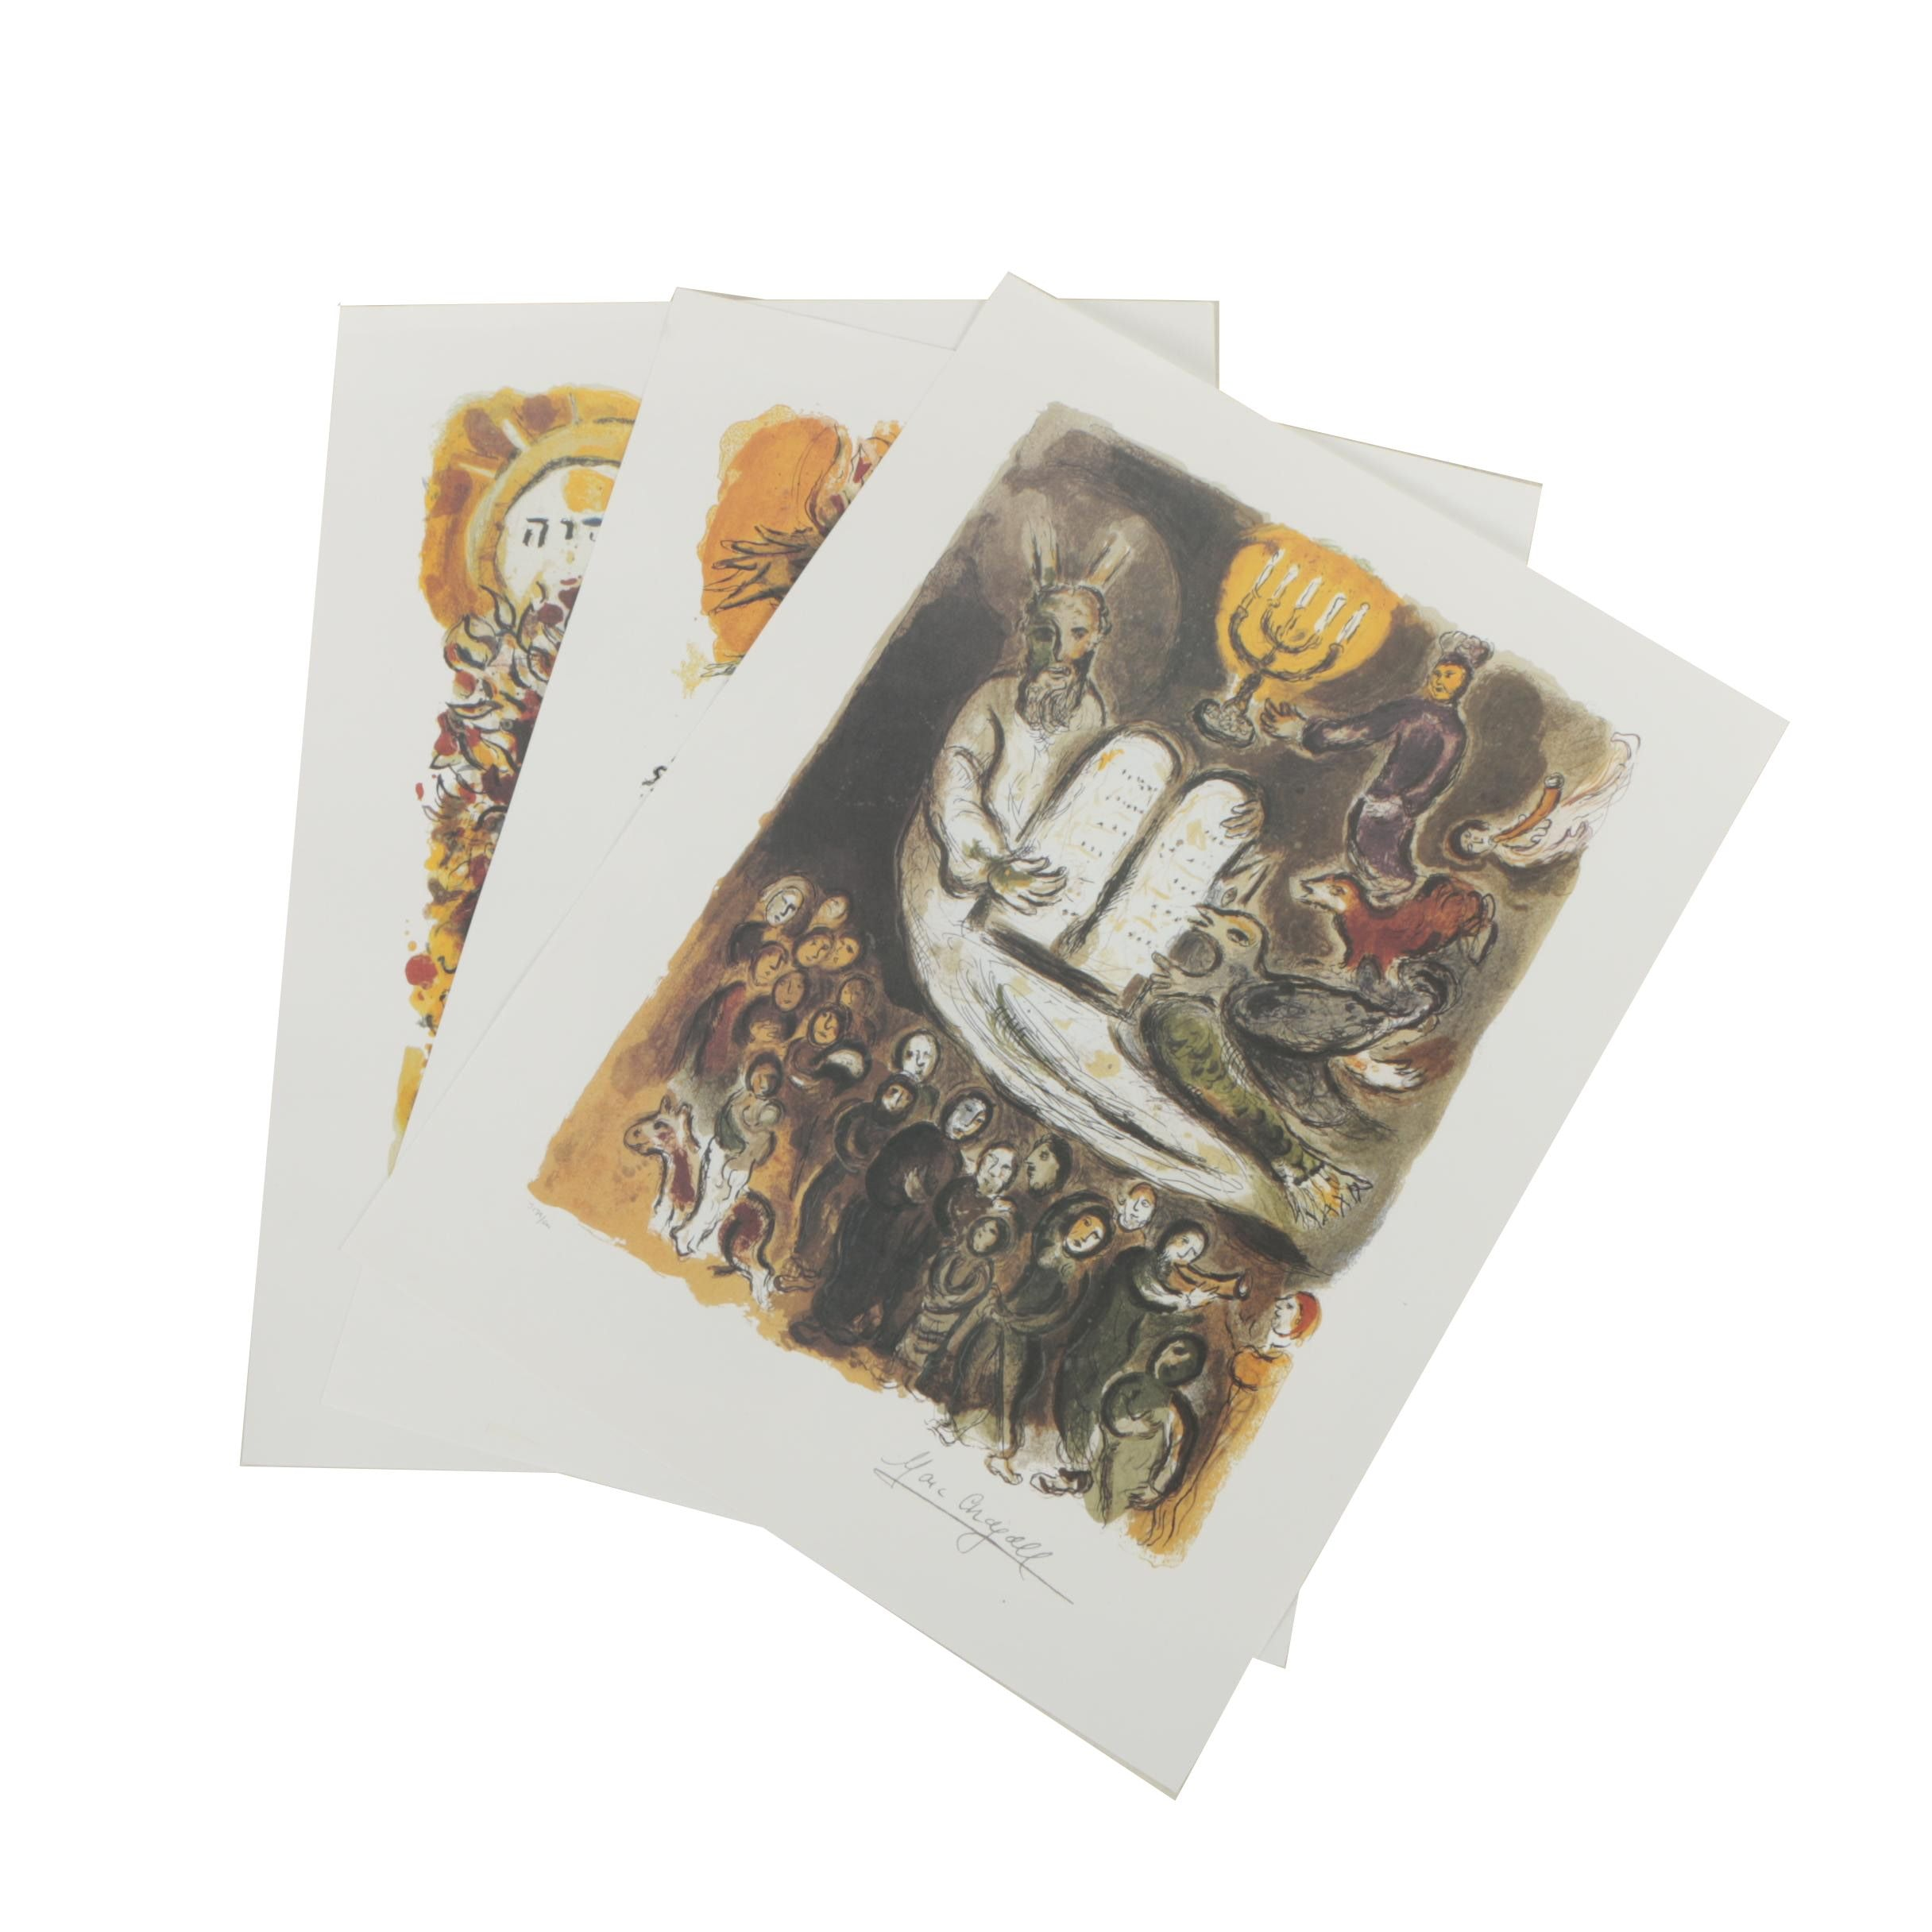 Offset Lithographs After Marc Chagall's Exodus Series